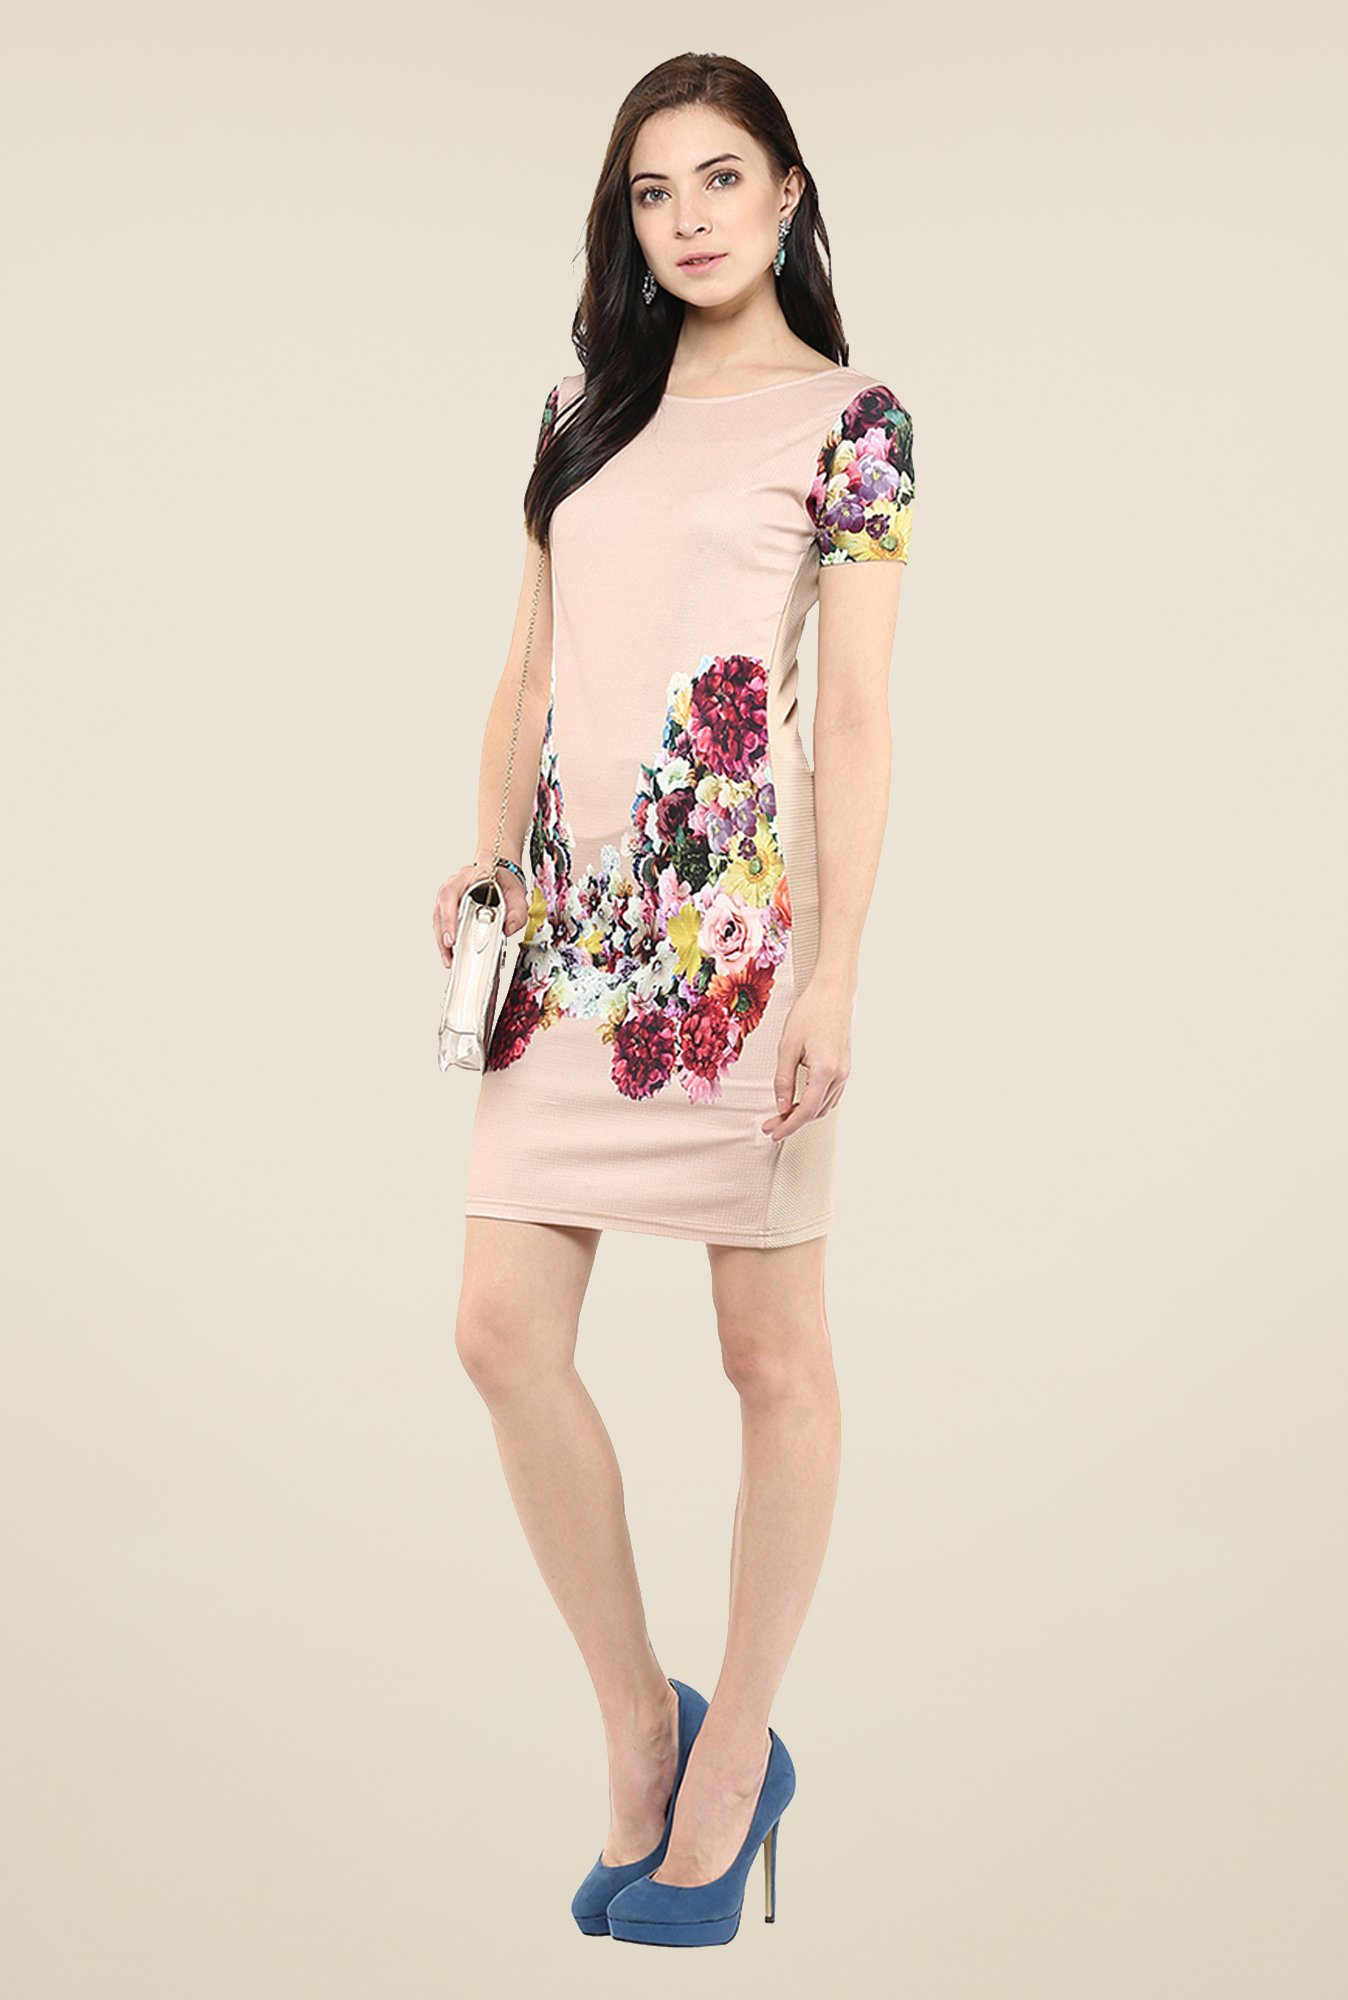 Yepme Beige Floral Print T-Shirt Dress